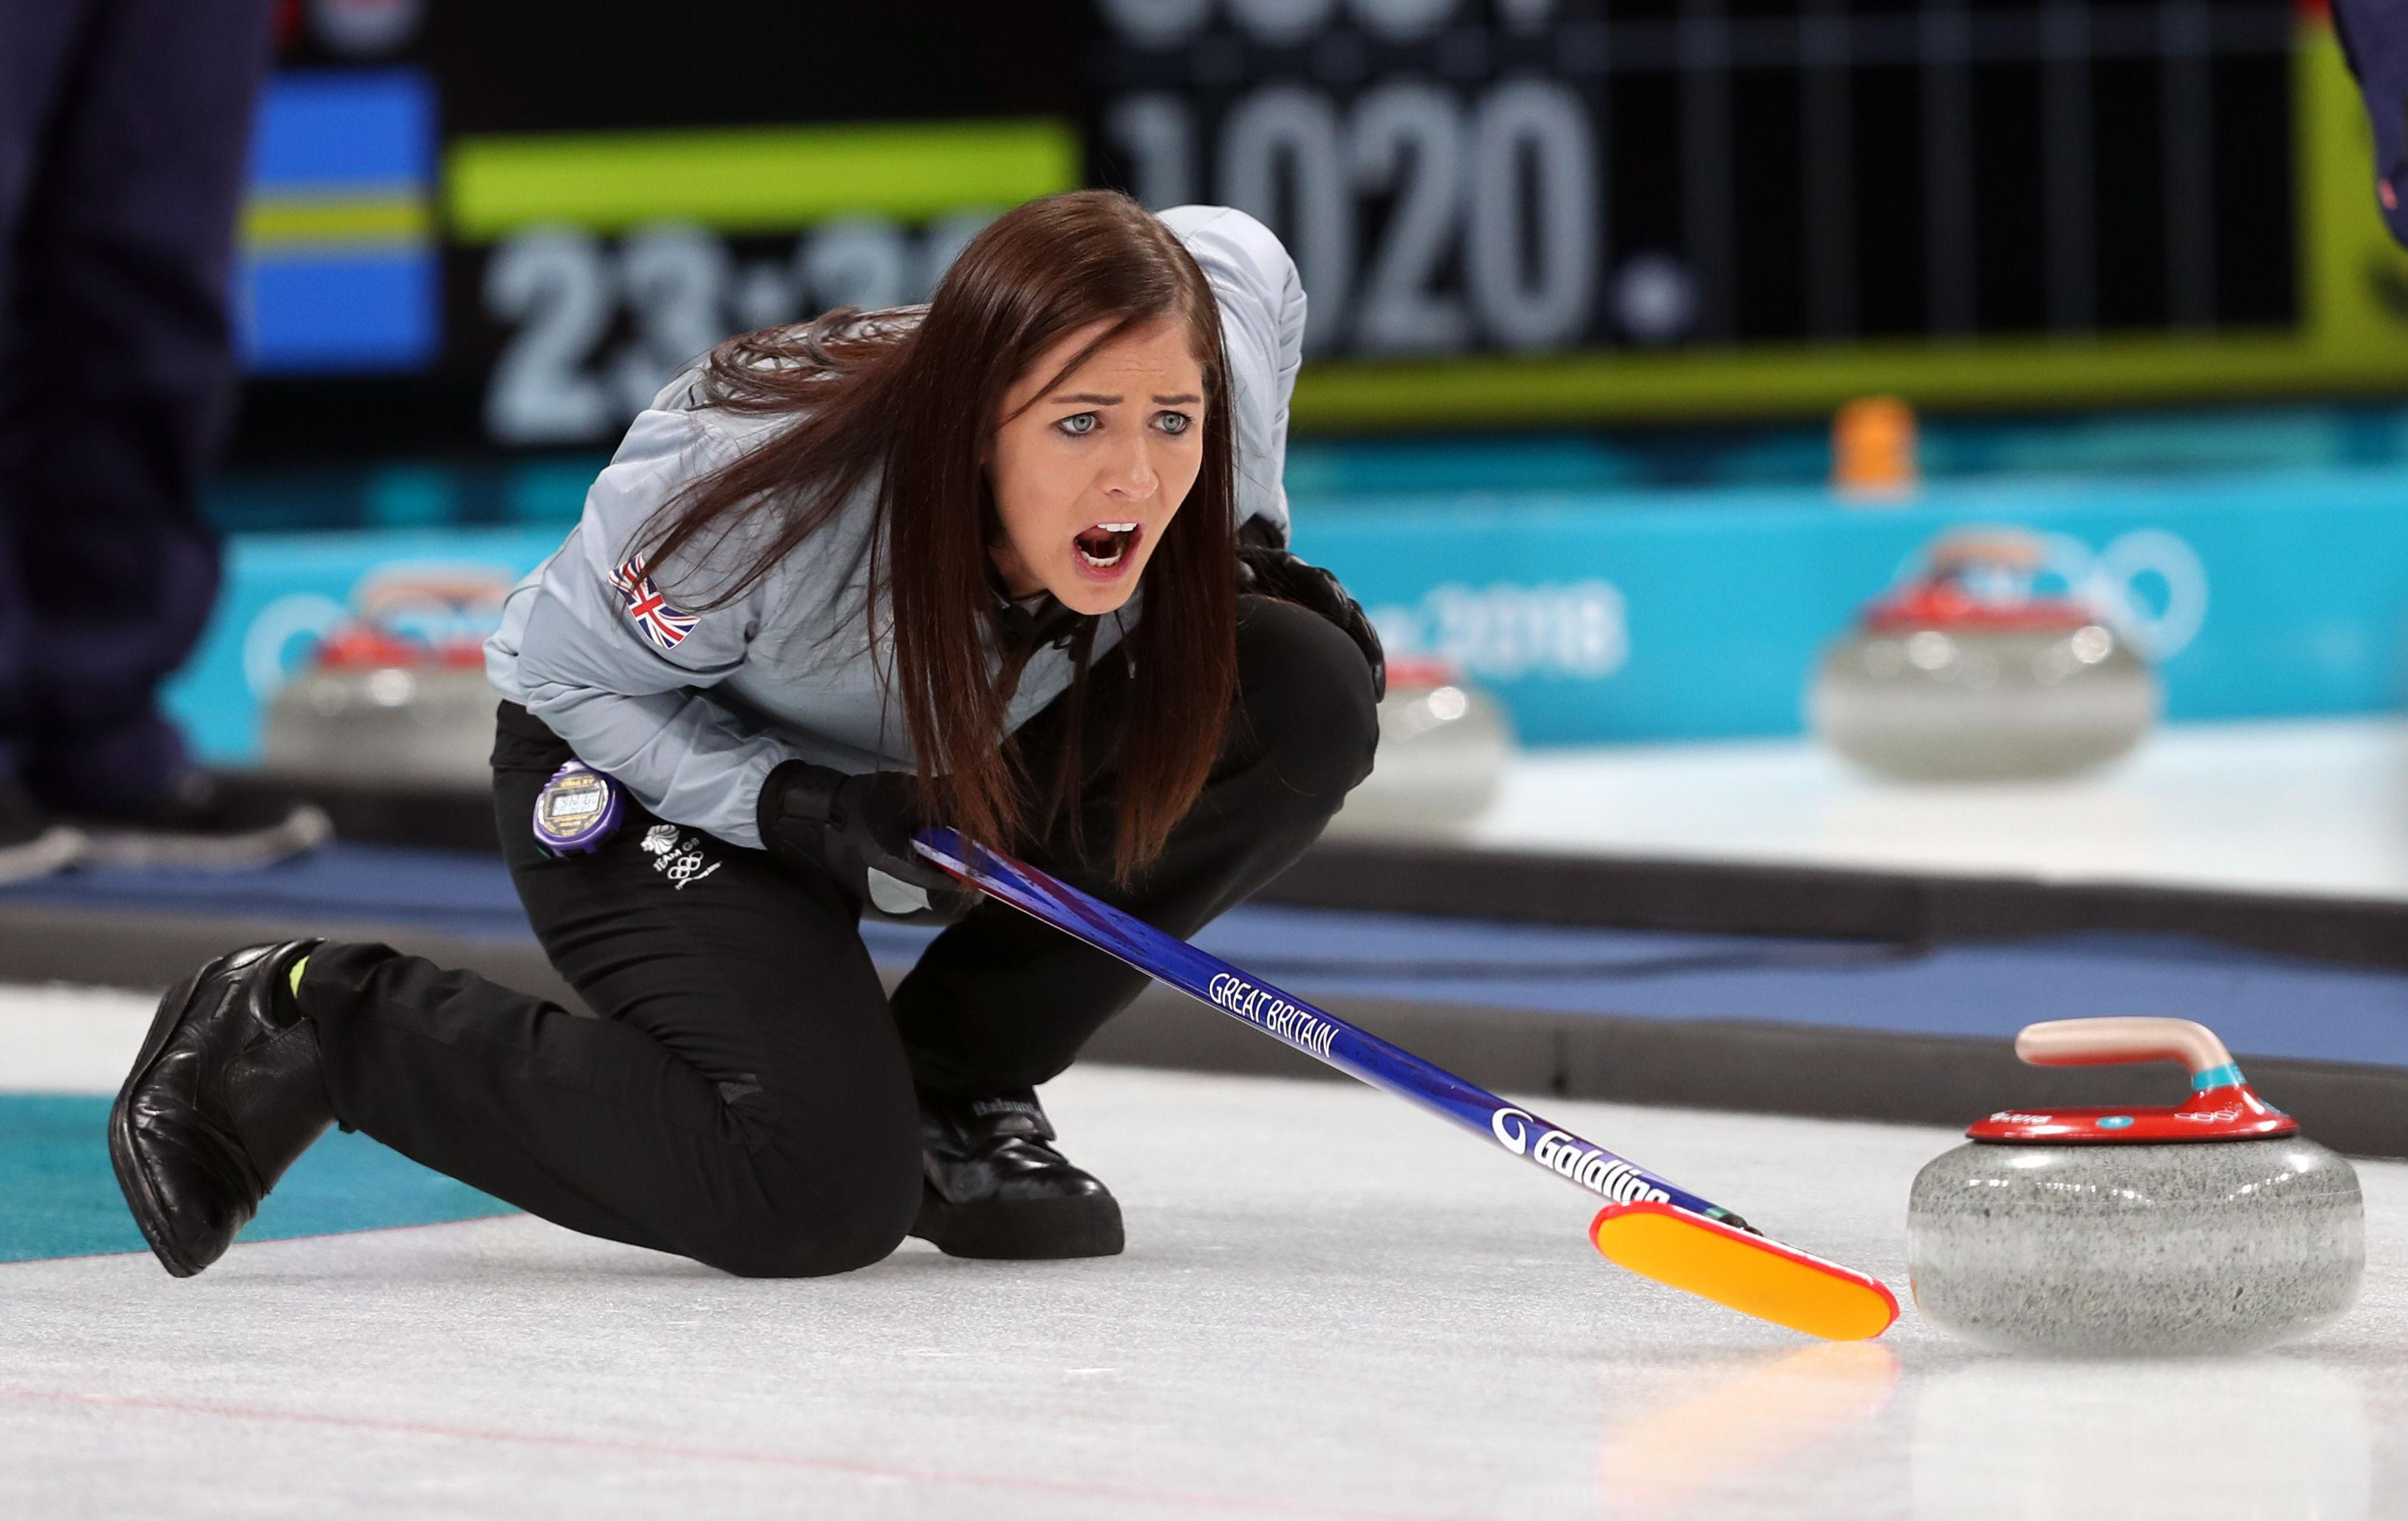 Eve Muirhead is looking to improve on a bronze medal in Sochi